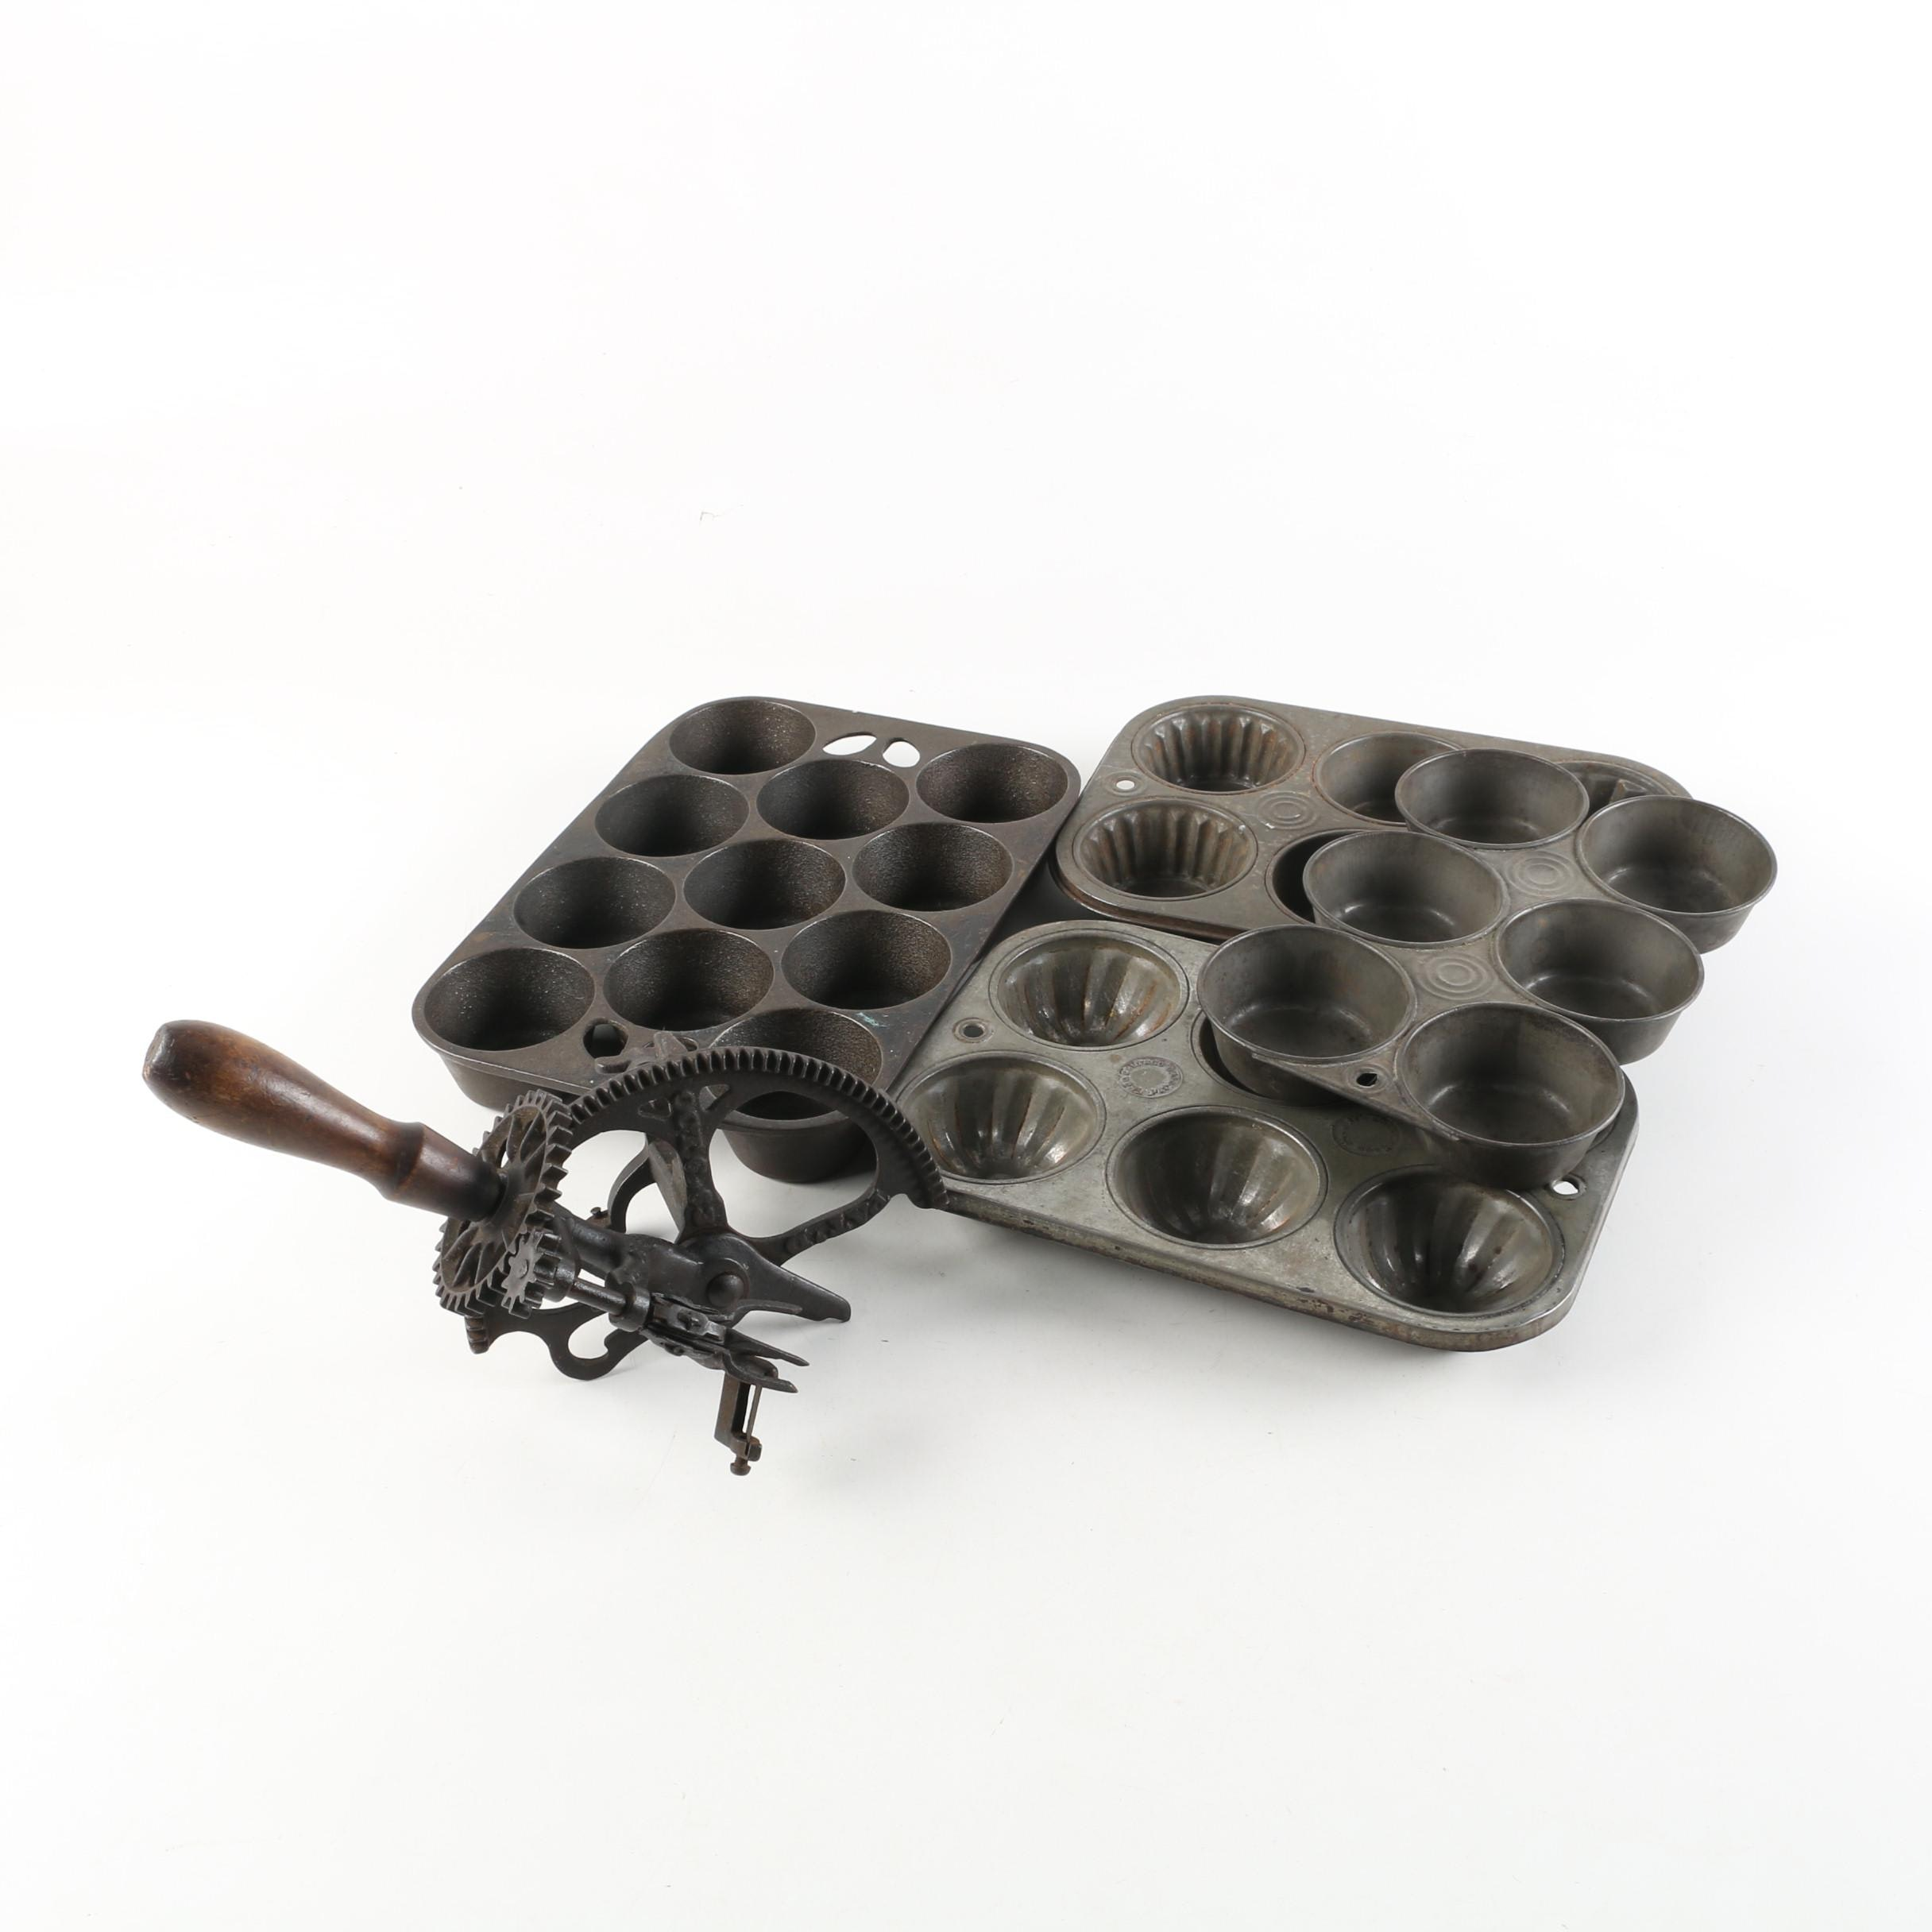 Vintage Wagner Cast Iron Muffin Pan, an Antique Apple Peeler, and Other Bakeware